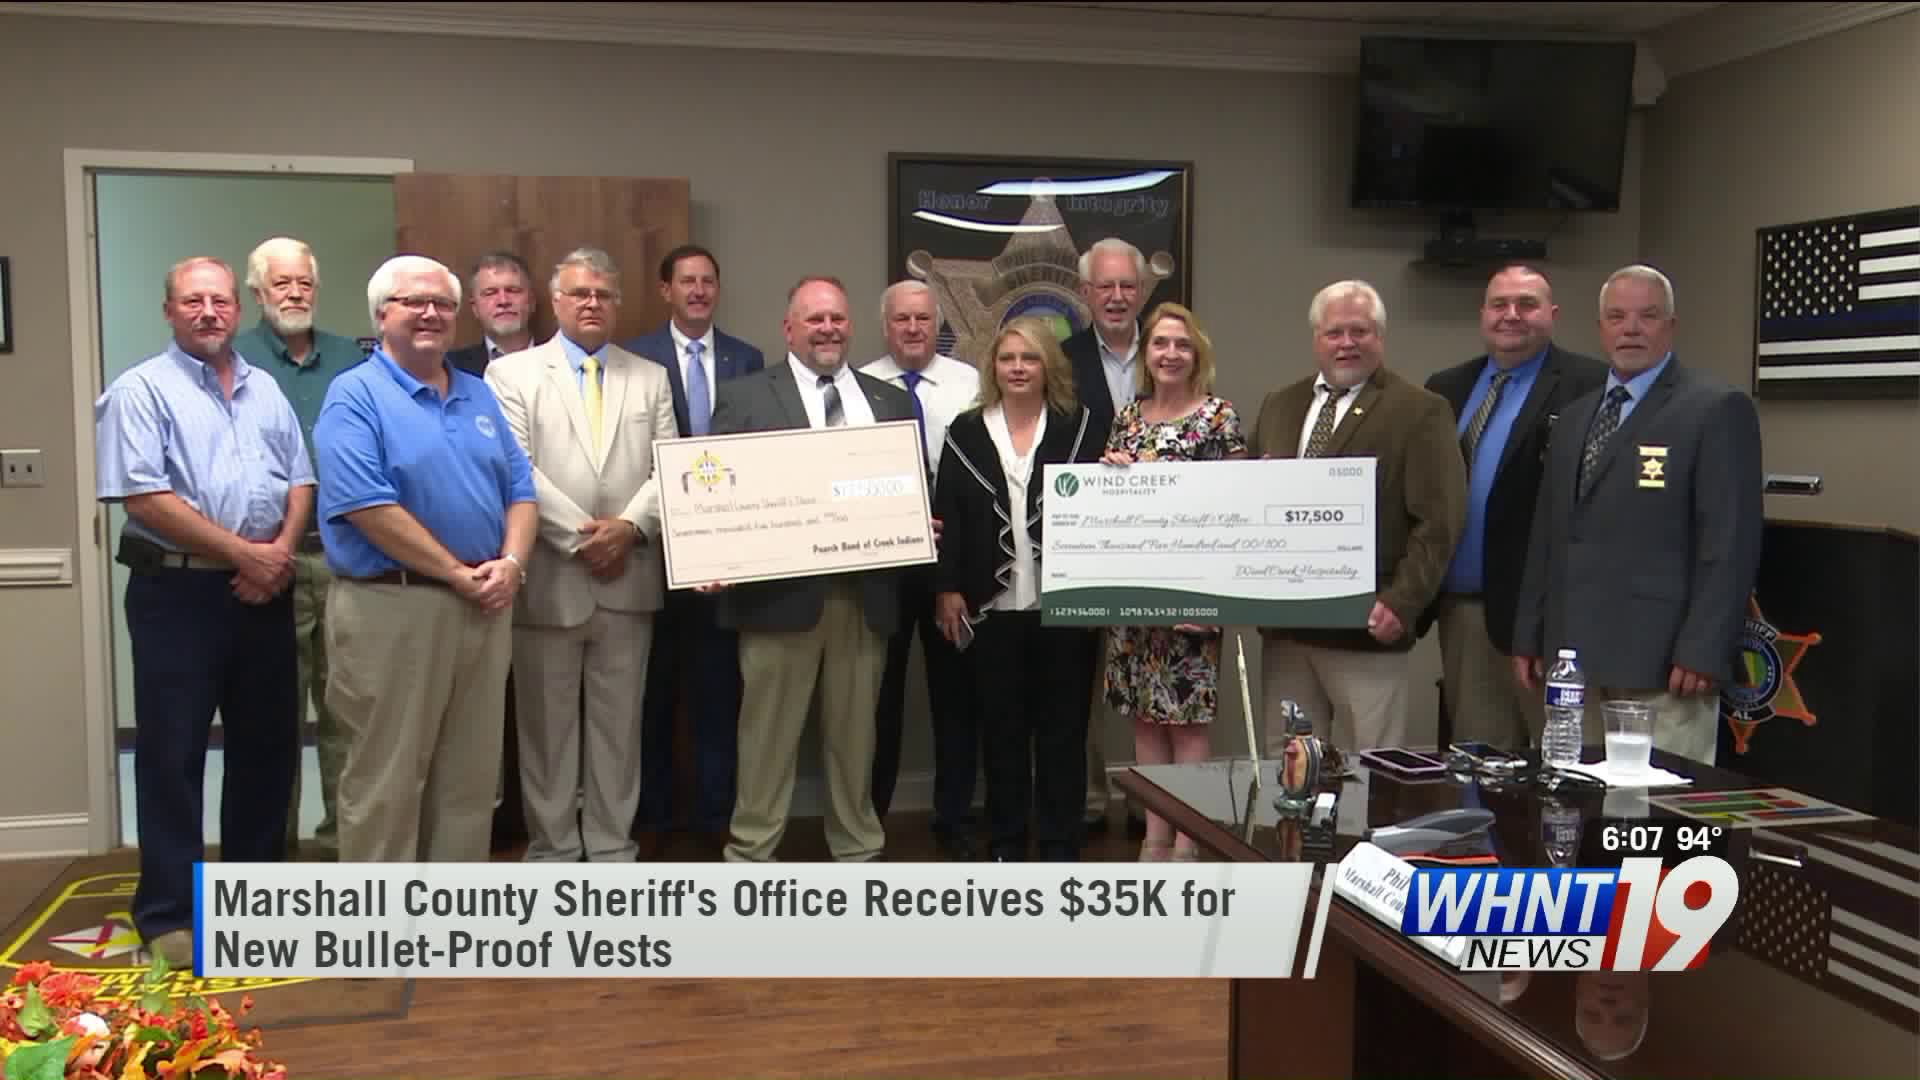 Thumbnail: Poarch Band of Creek Indians donates $35,000 for bullet-proof vests to Marshall County Sheriff's Office - WHNT News 19